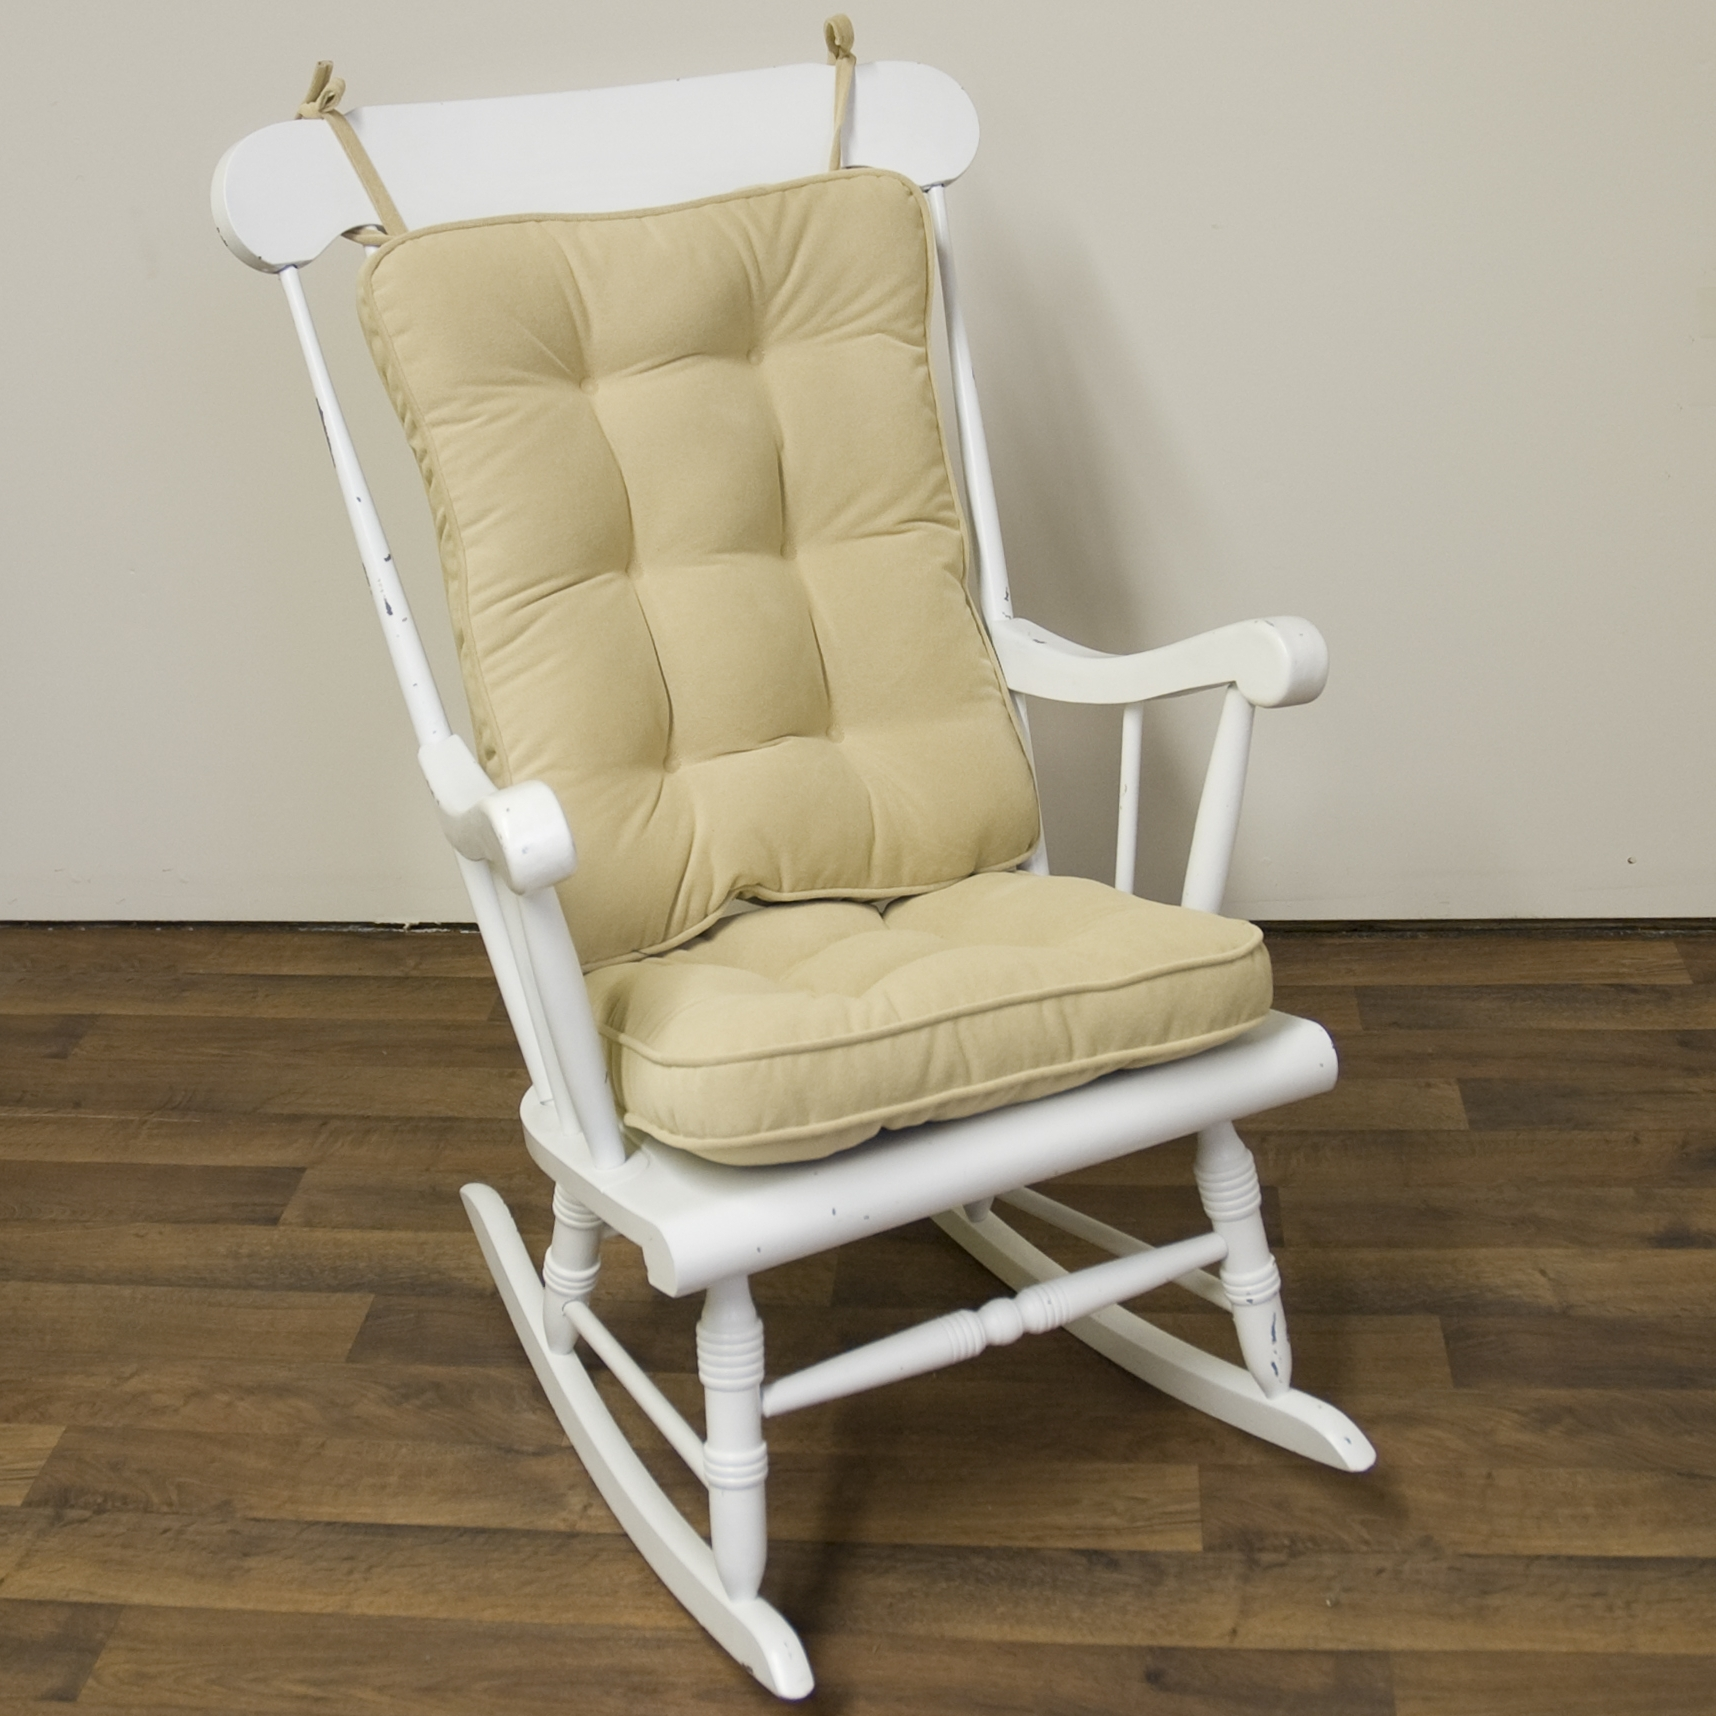 Widely Used Best Lowes Wooden Rocking Chairs #27779 Intended For Rocking Chairs At Lowes (View 12 of 15)